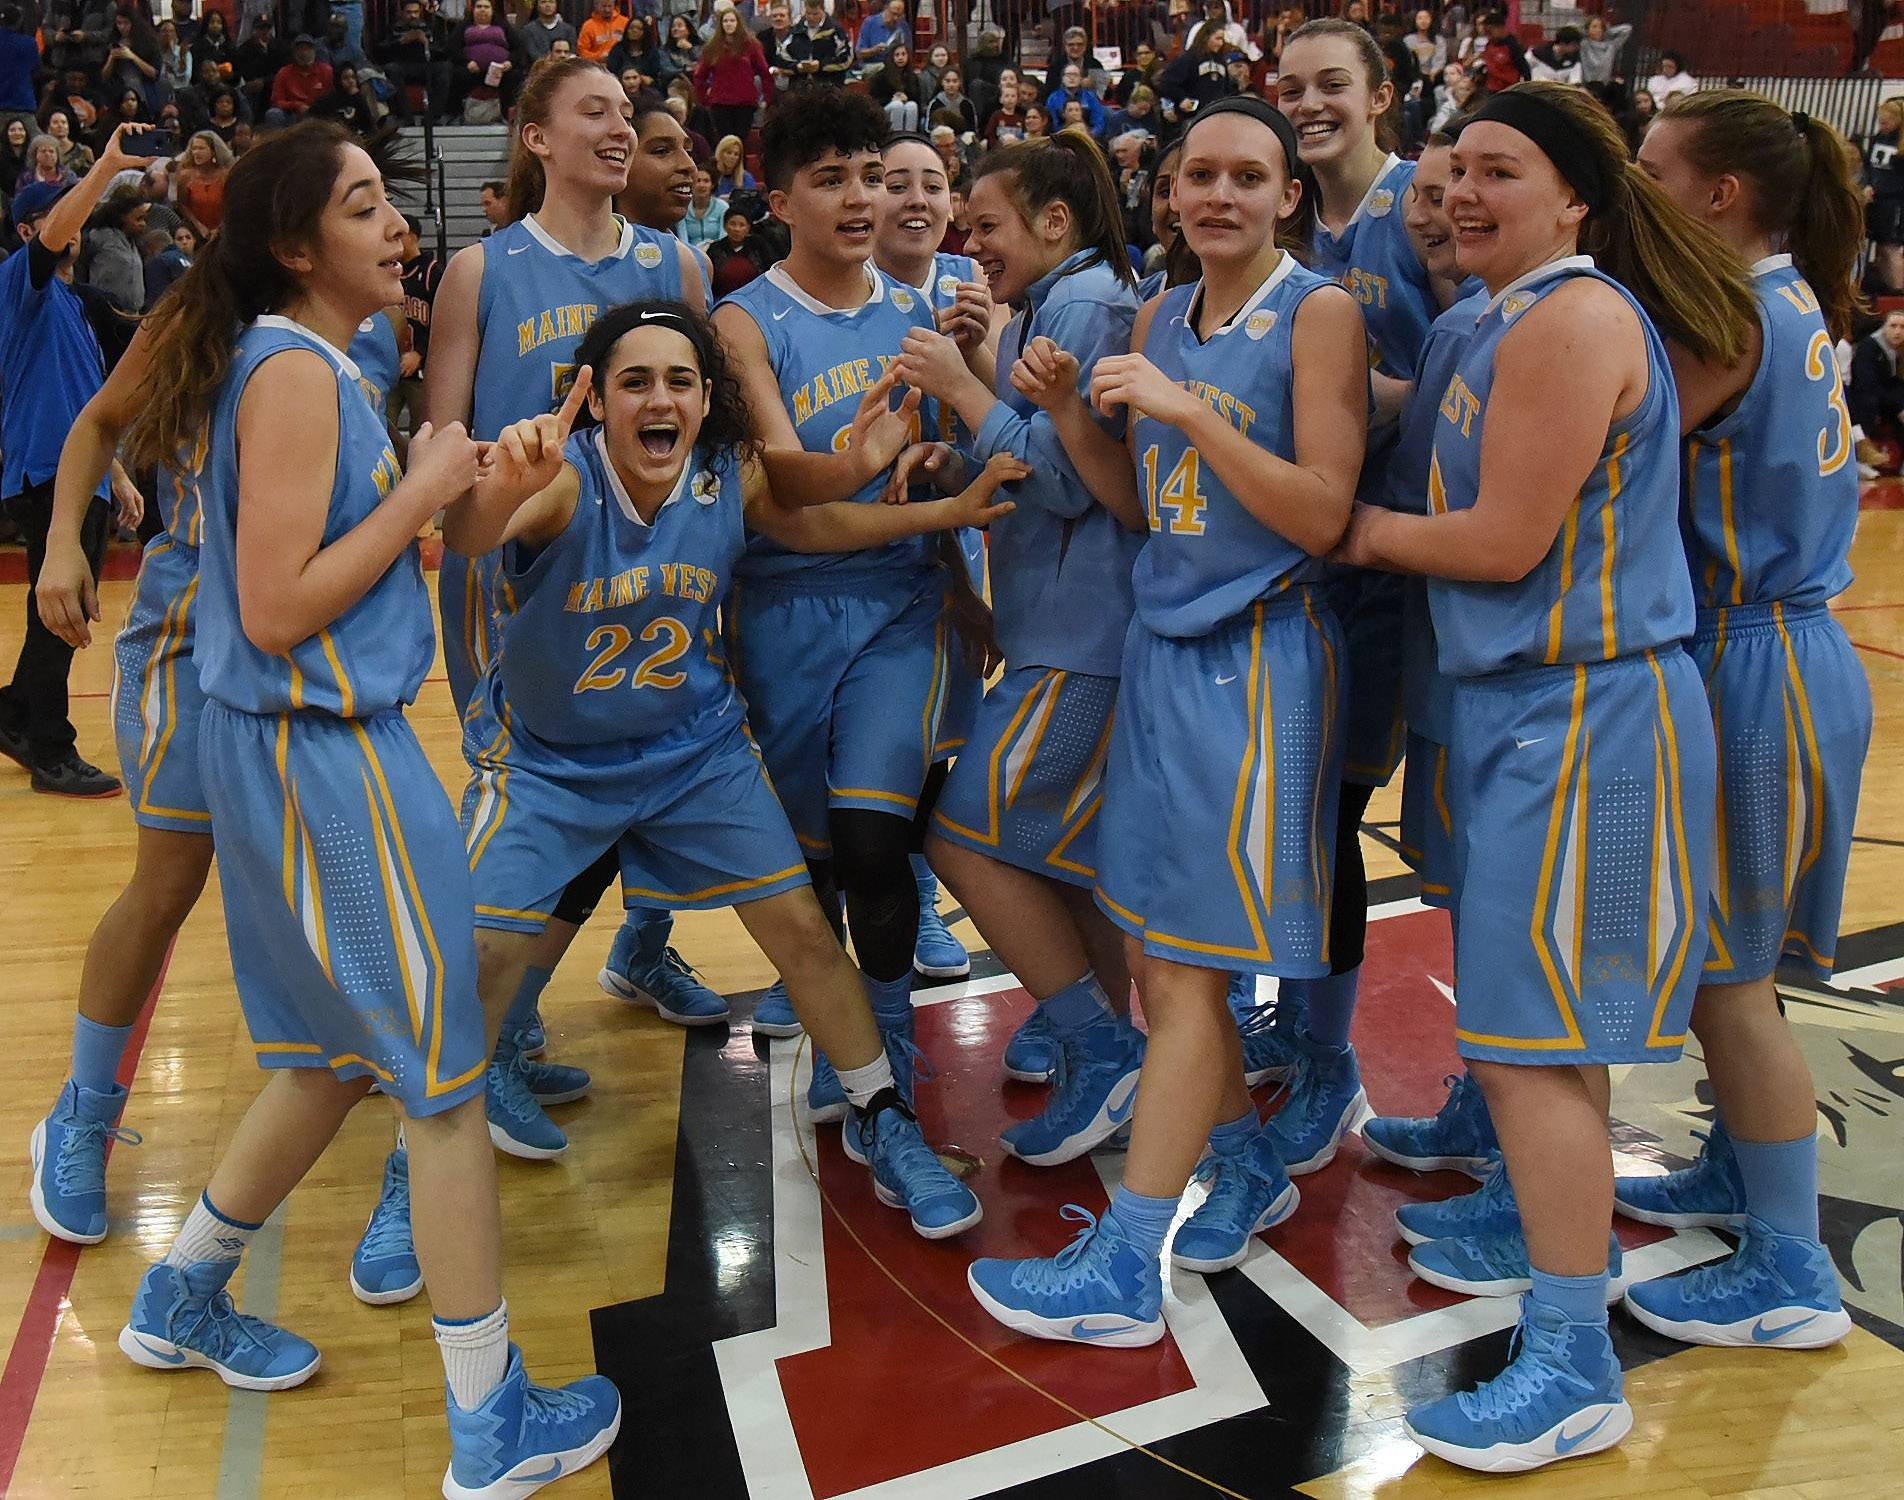 Maine West celebrates after defeating Evanston in the Class 4A sectional final at Niles West on Thursday night.